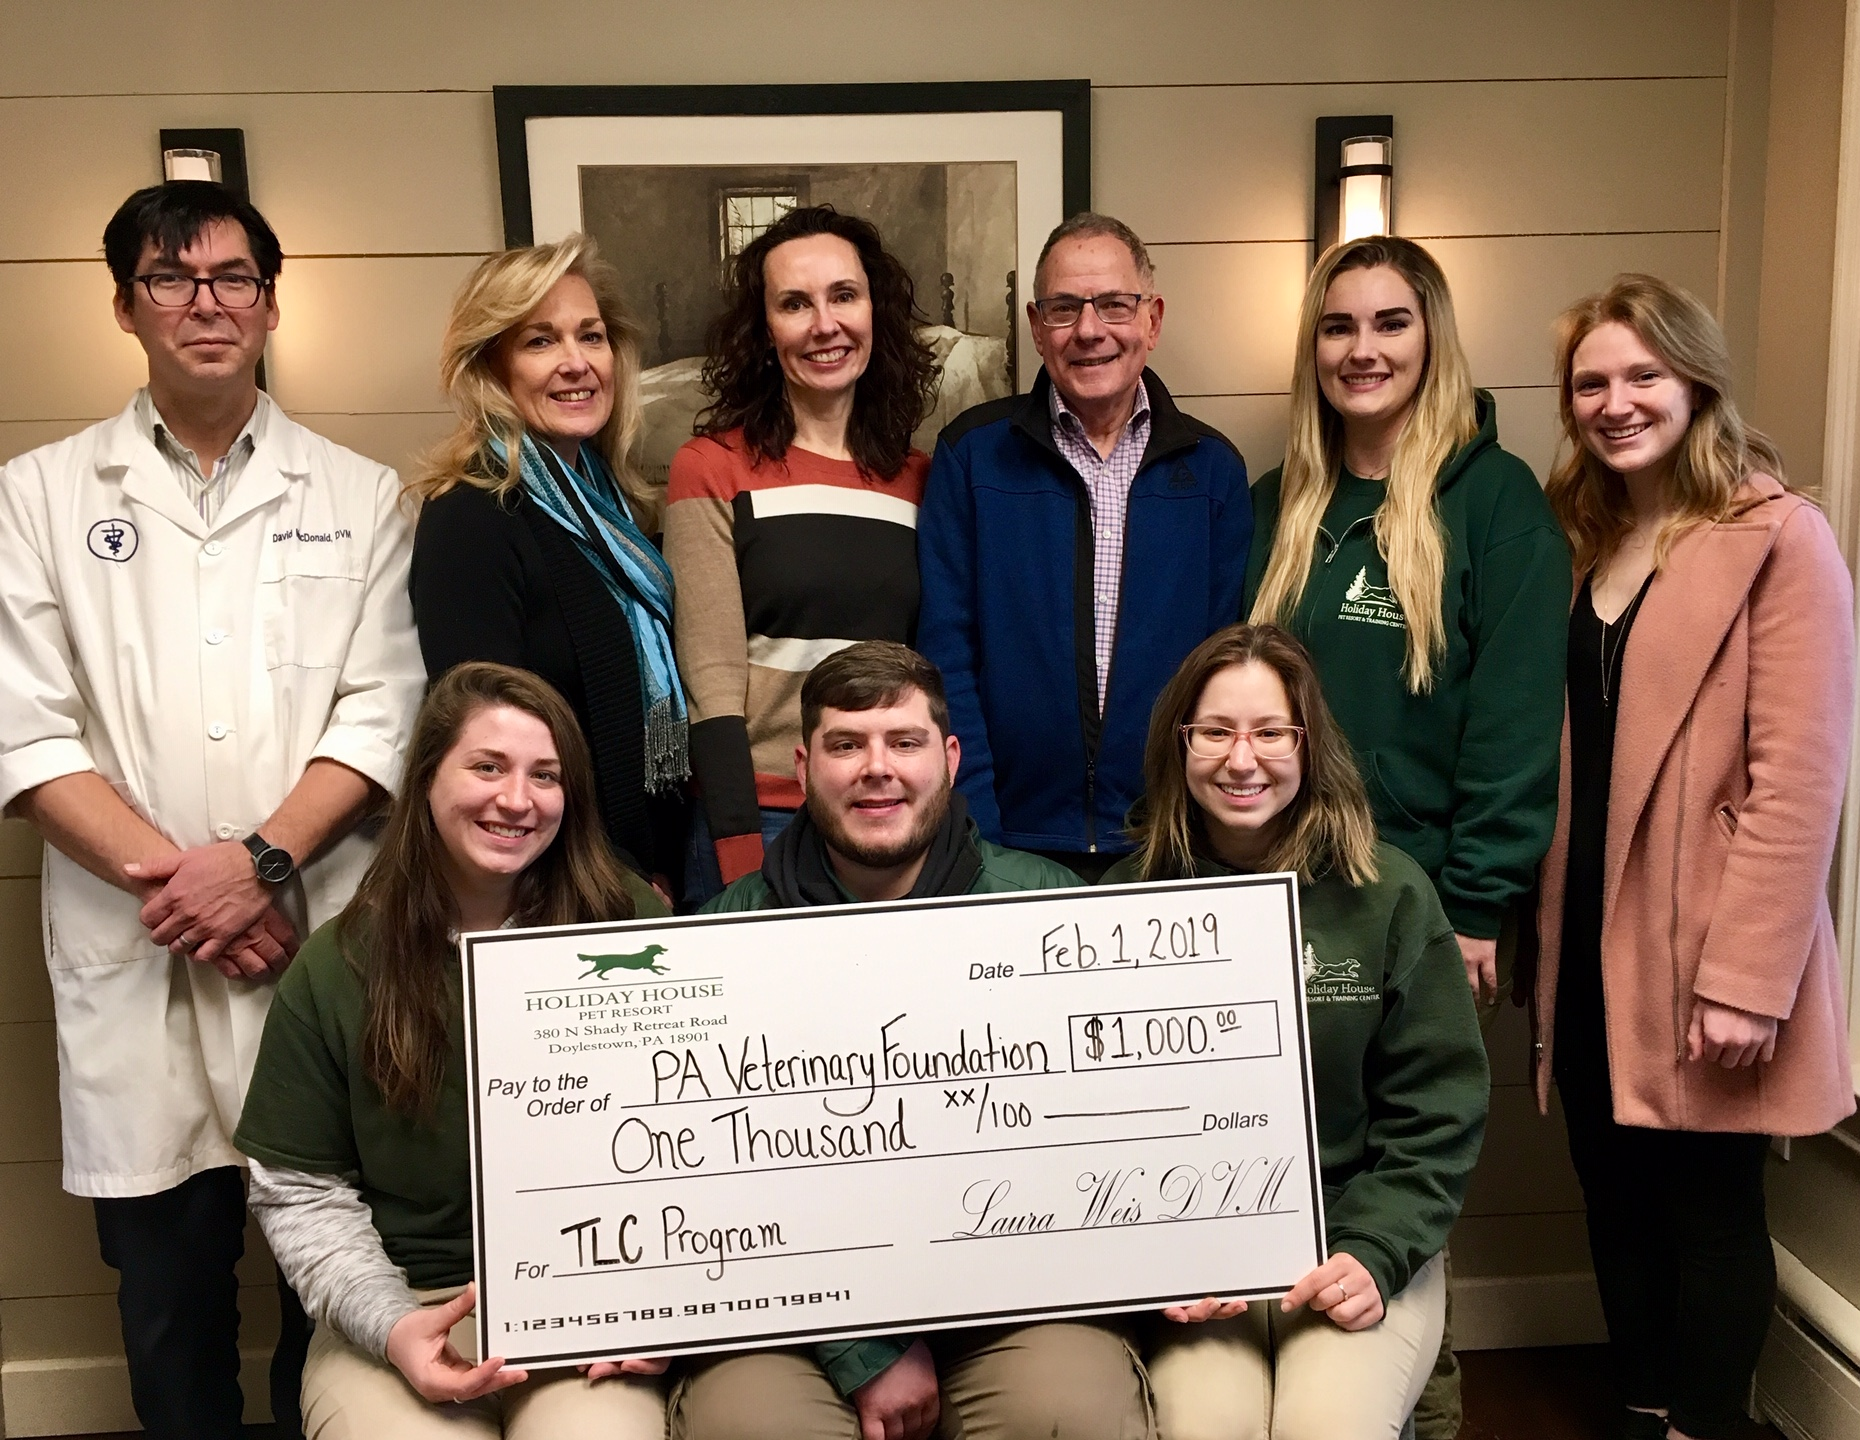 Holiday House Fundraiser Presentation to PVF